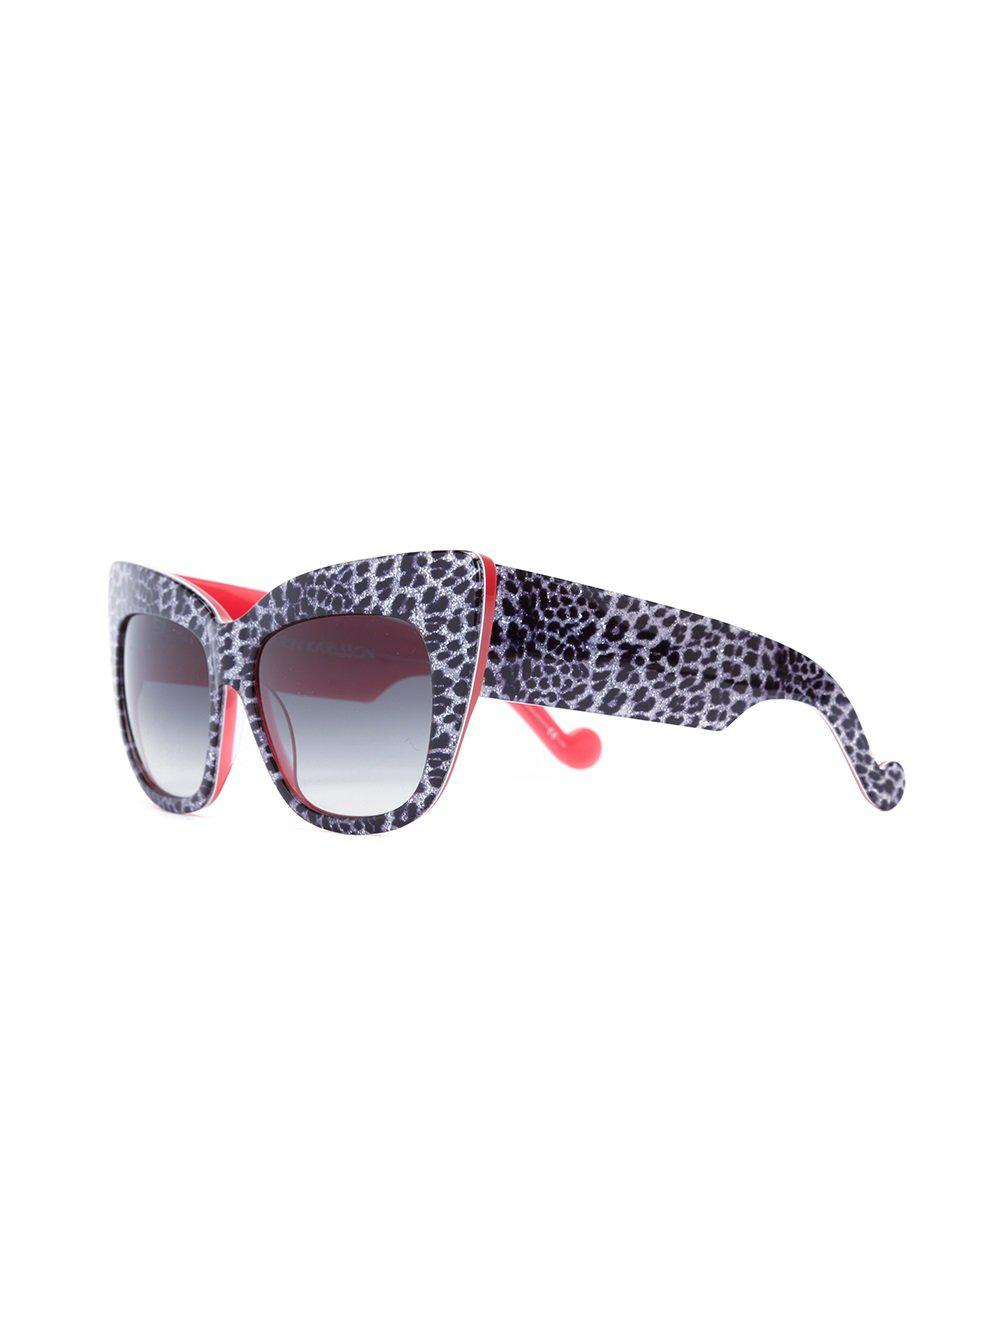 6f54e76aa65 Anna Karin Karlsson  alice Goes To Cannes  Sunglasses in Gray - Lyst